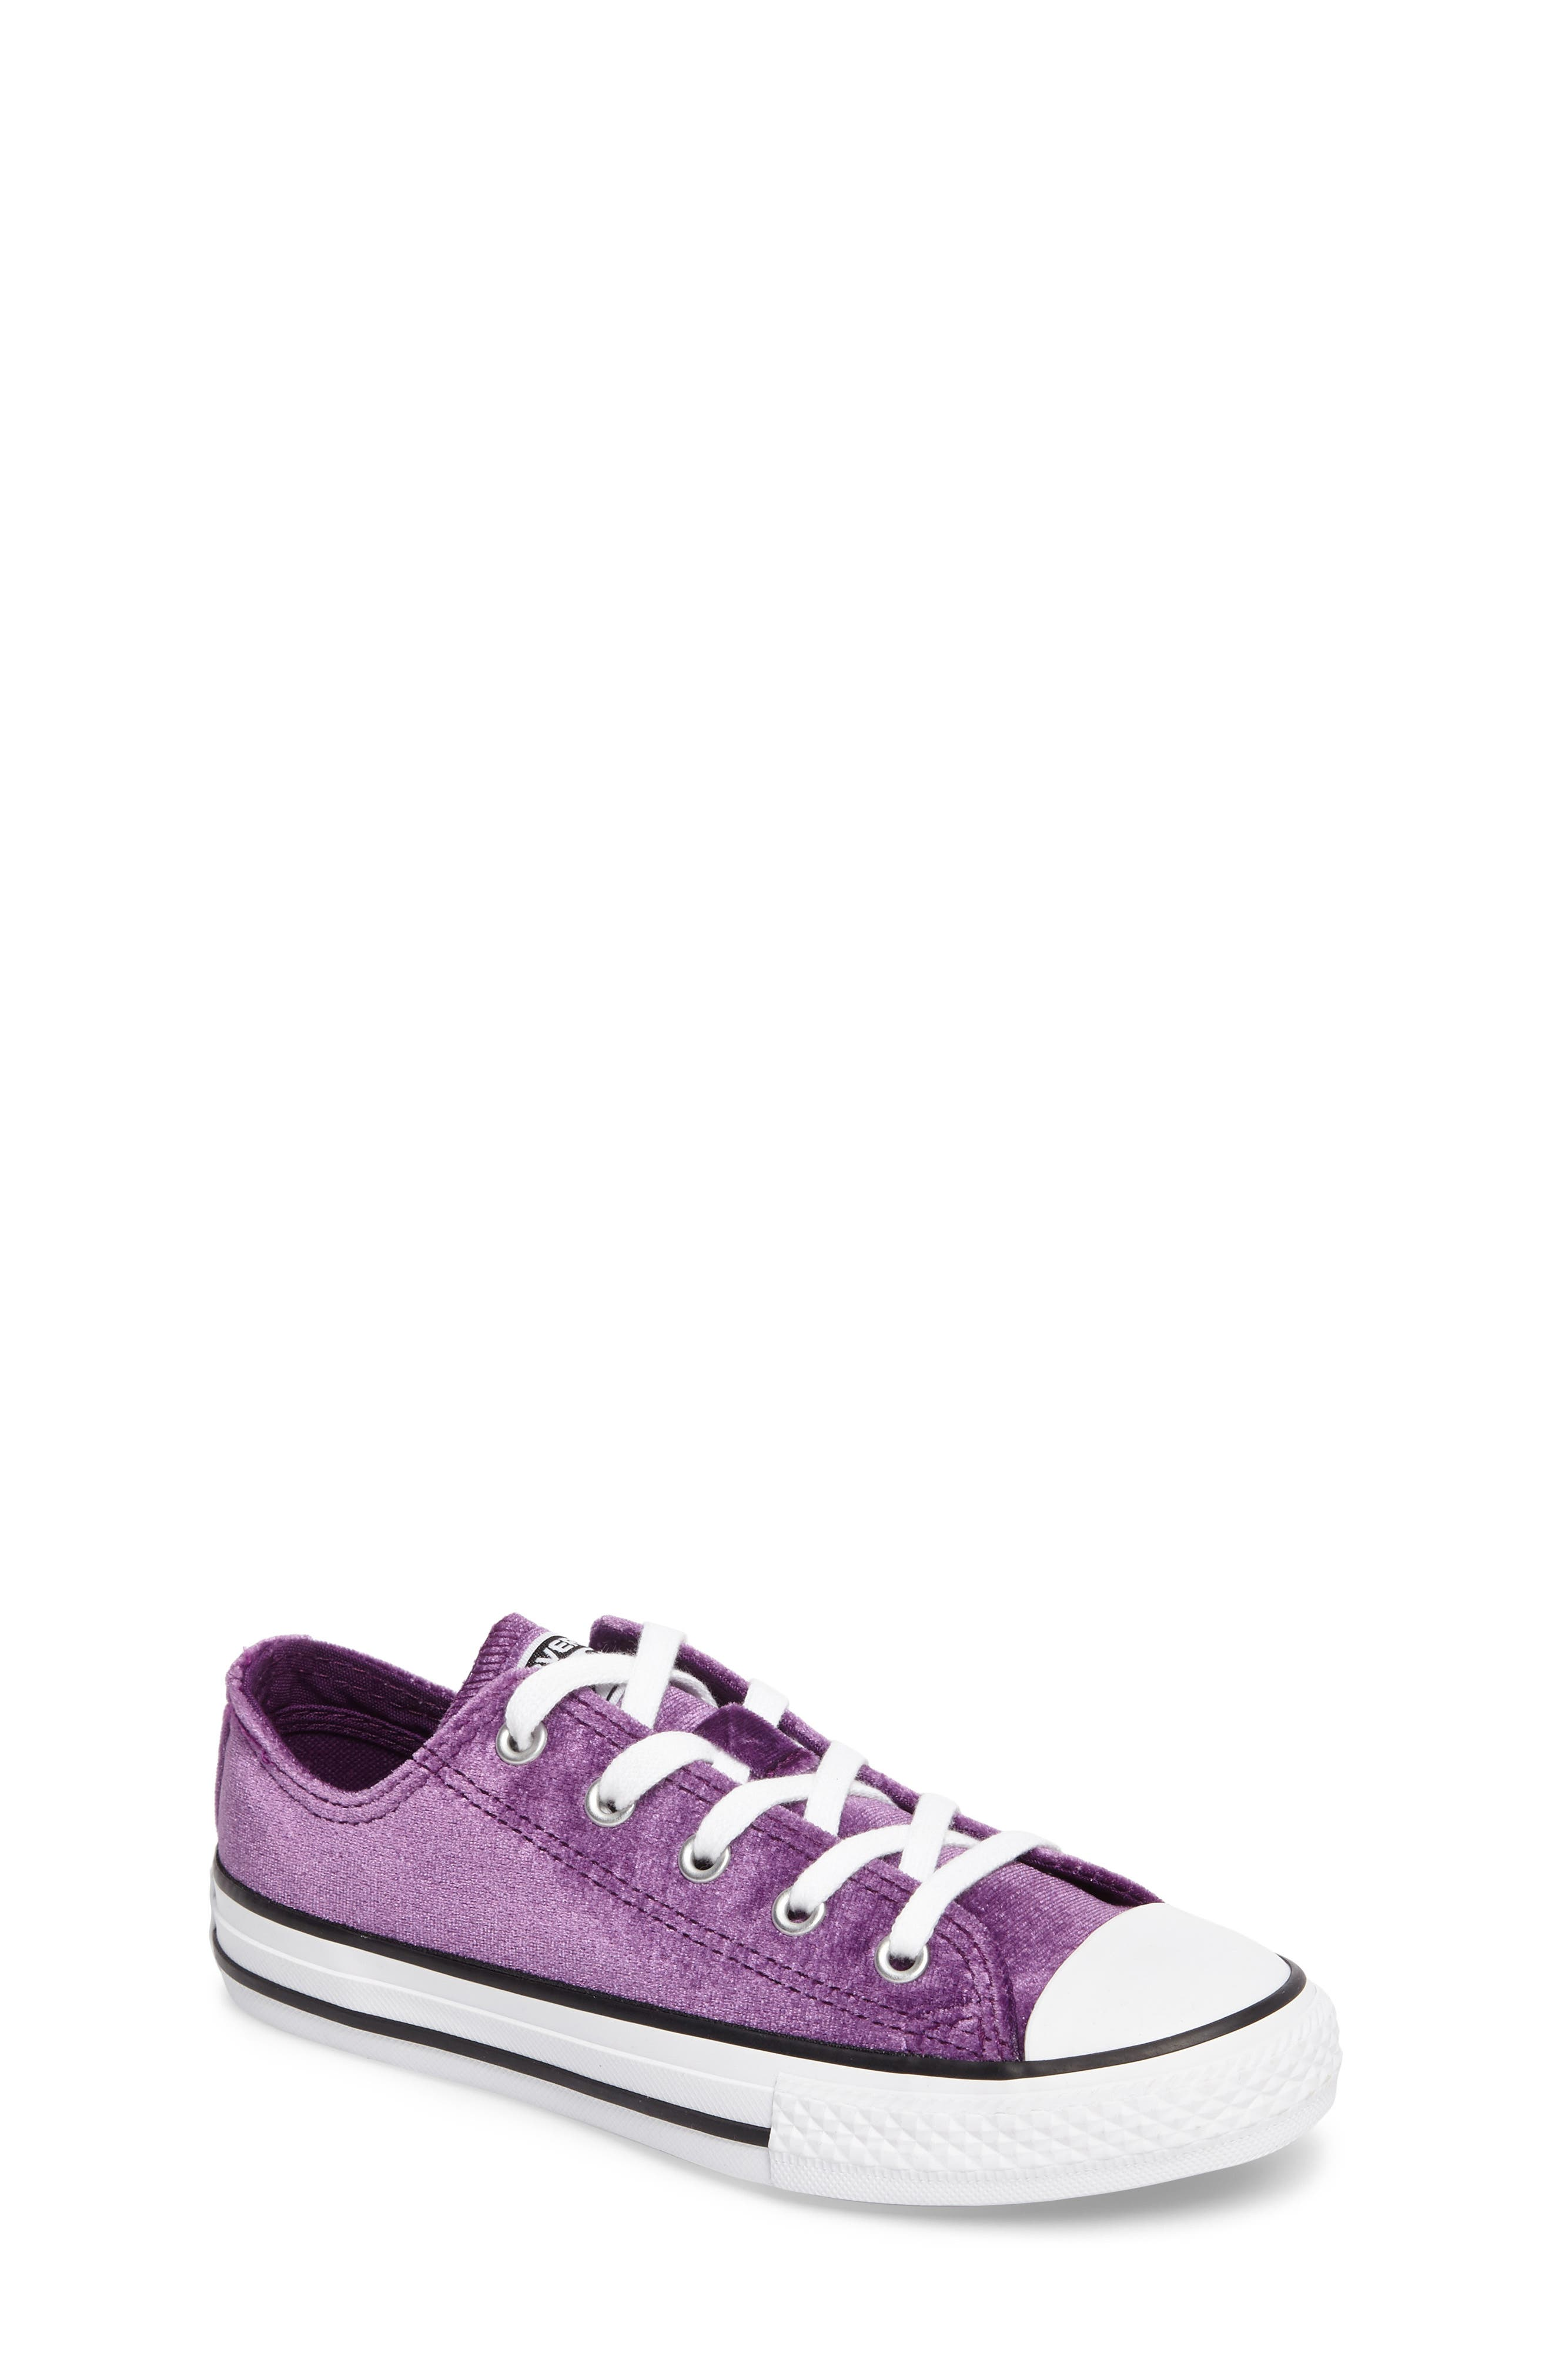 Chuck Taylor<sup>®</sup> All Star<sup>®</sup> Velvet OX Low Top Sneaker,                             Main thumbnail 1, color,                             Night Purple Velvet